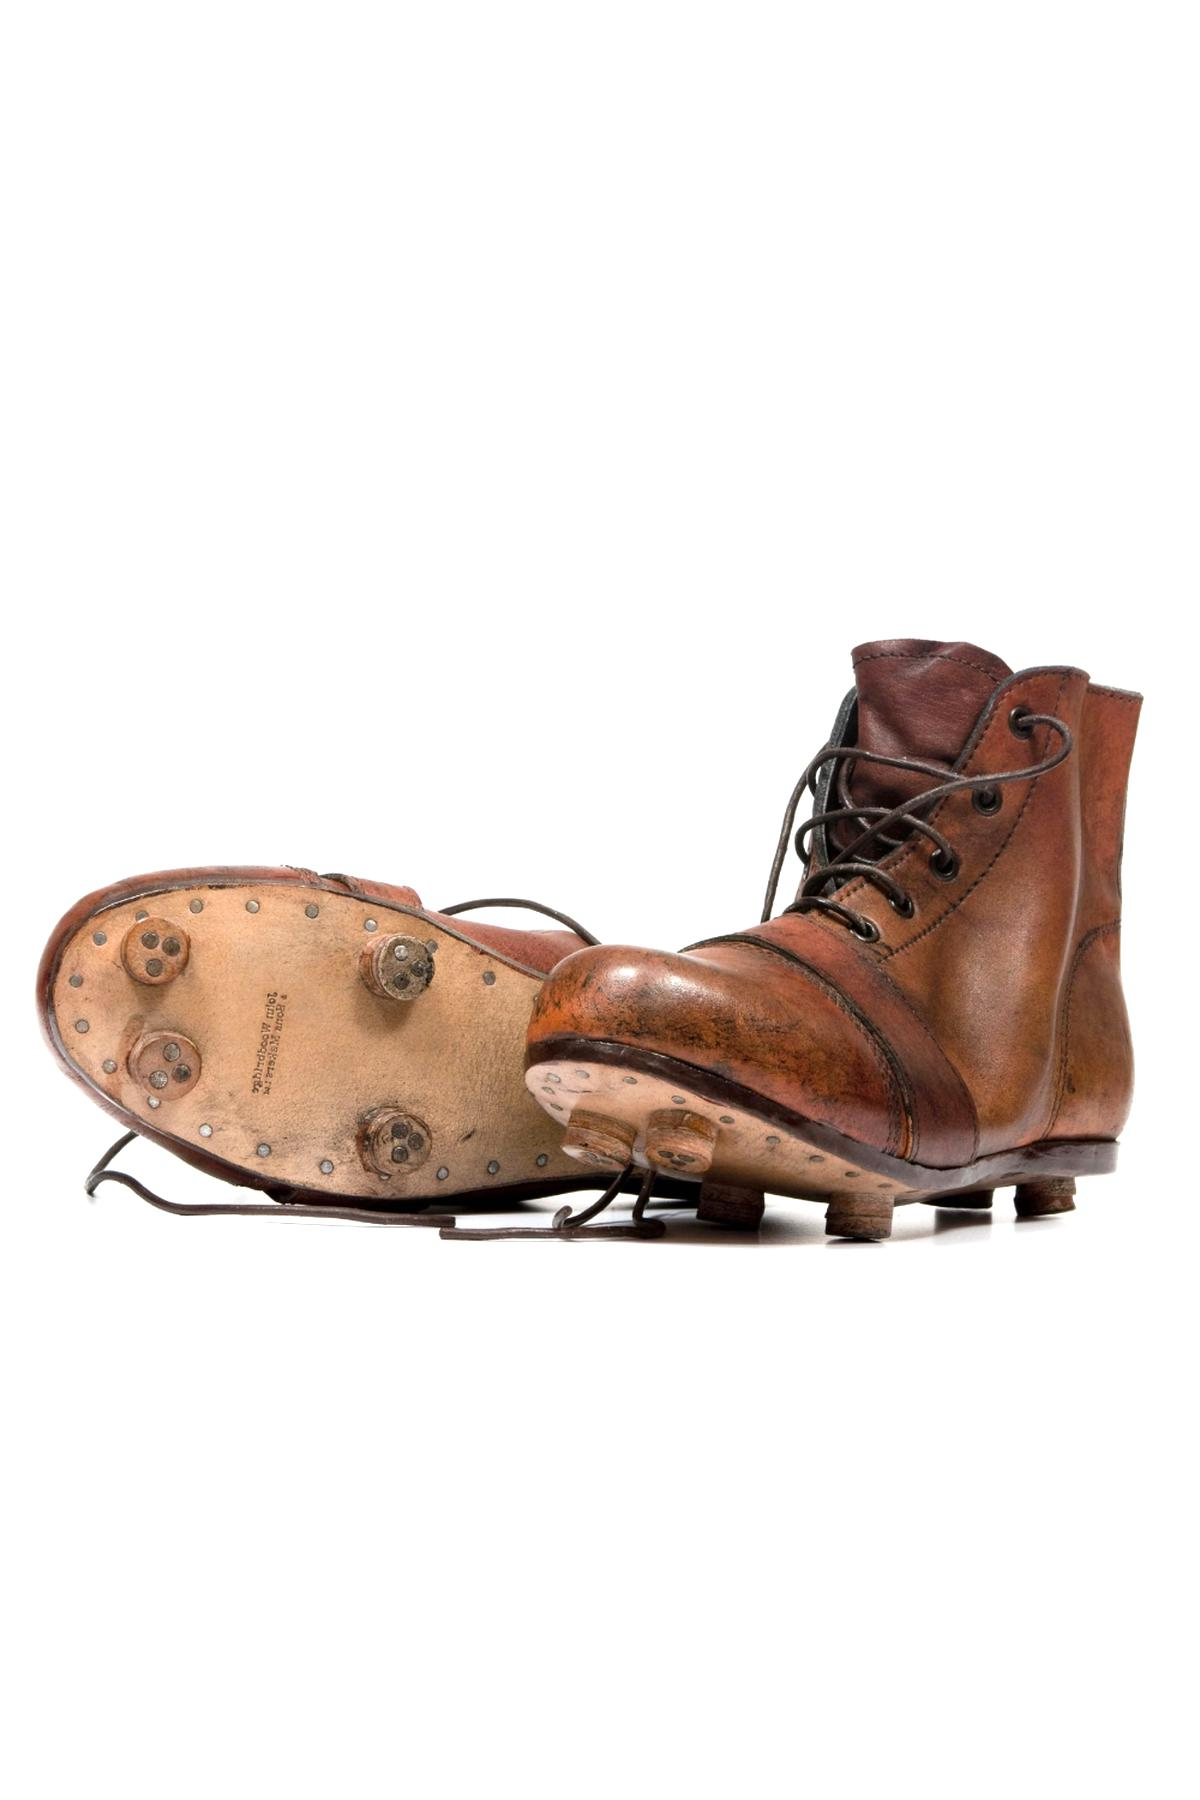 football chaussure vintage d'occasion